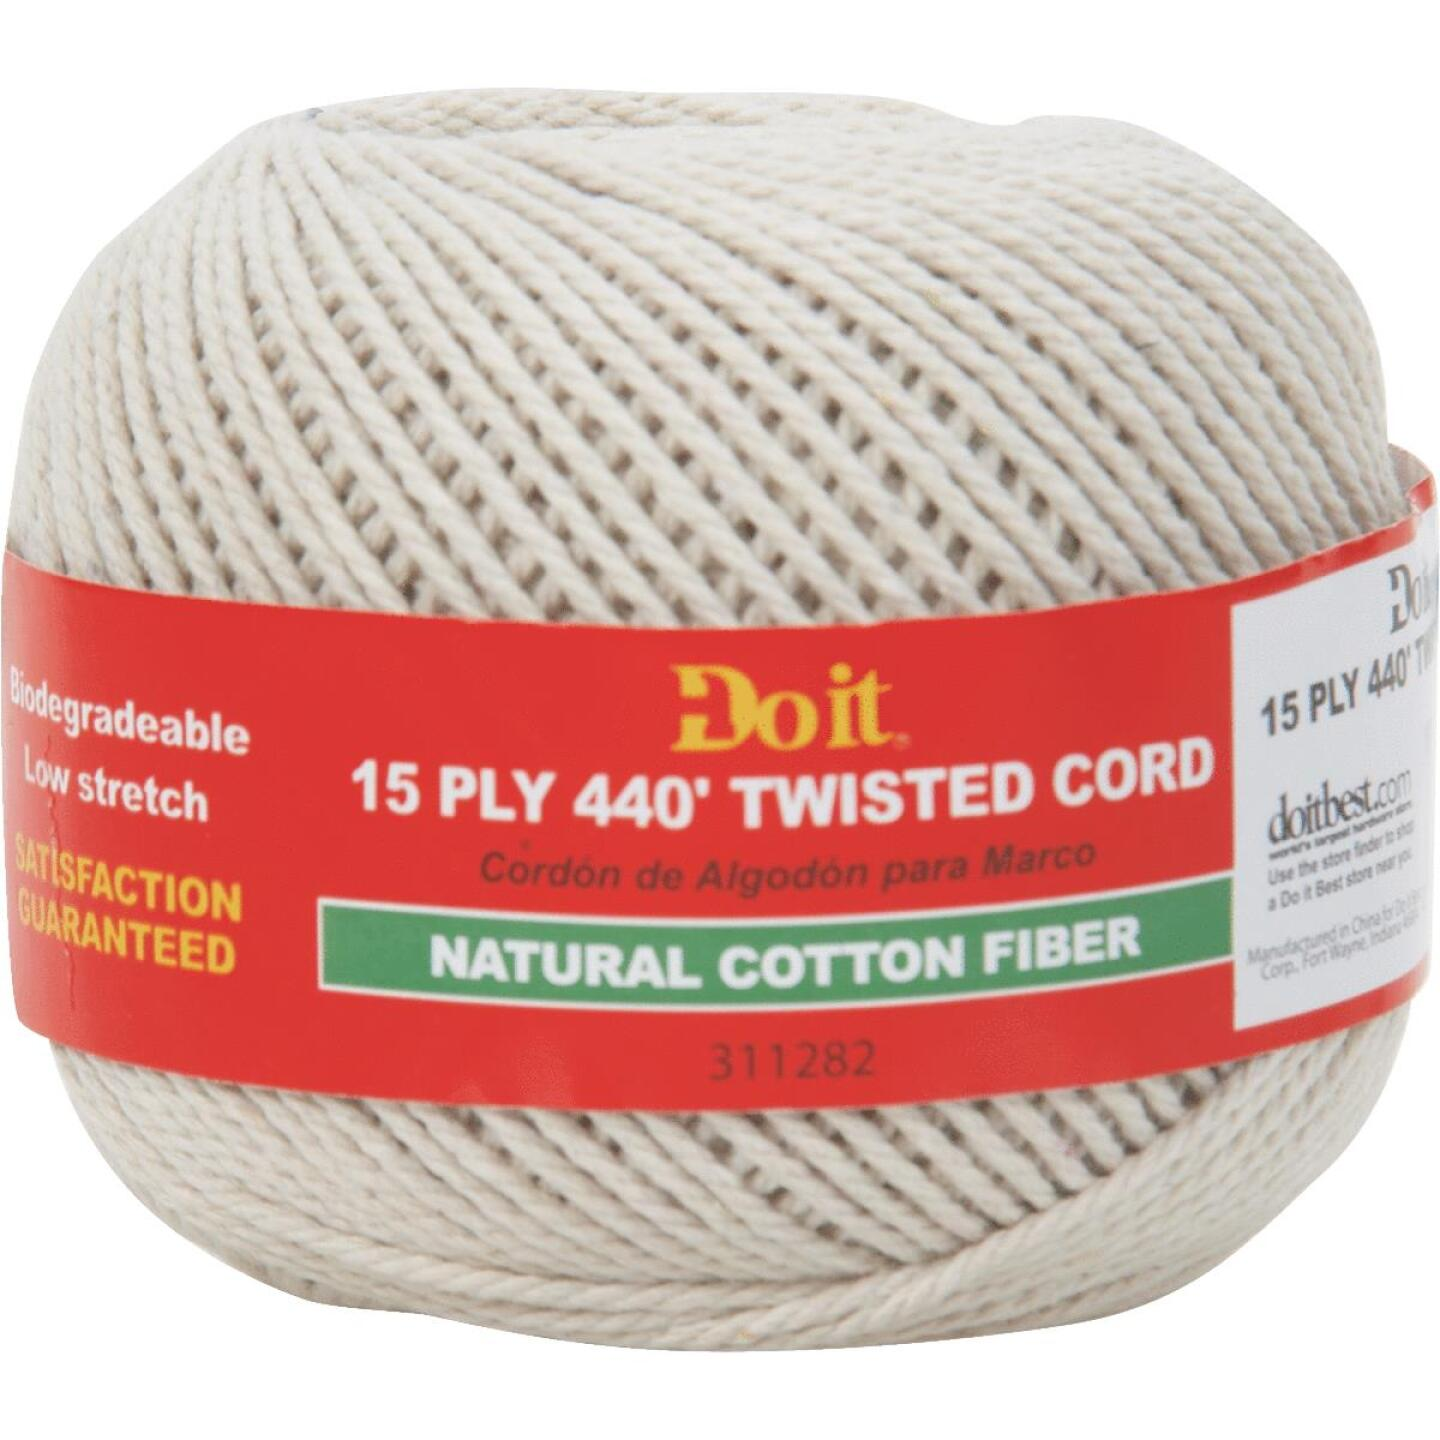 Do it #15 x 440 Ft. Natural Twisted Cotton Cord Image 1